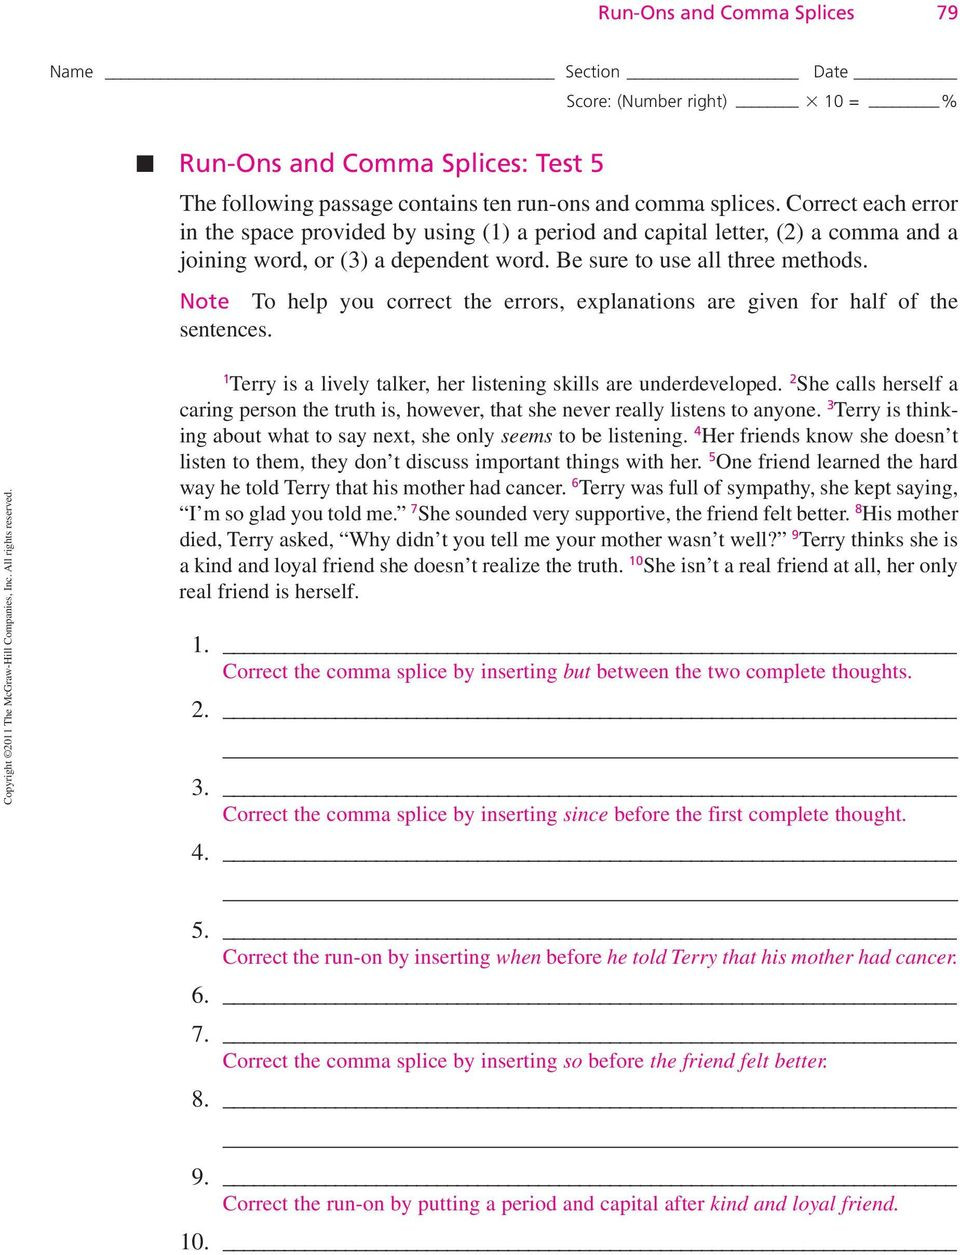 Comma Splice Worksheet High School 6 Run S and Ma Splices Pdf Free Download